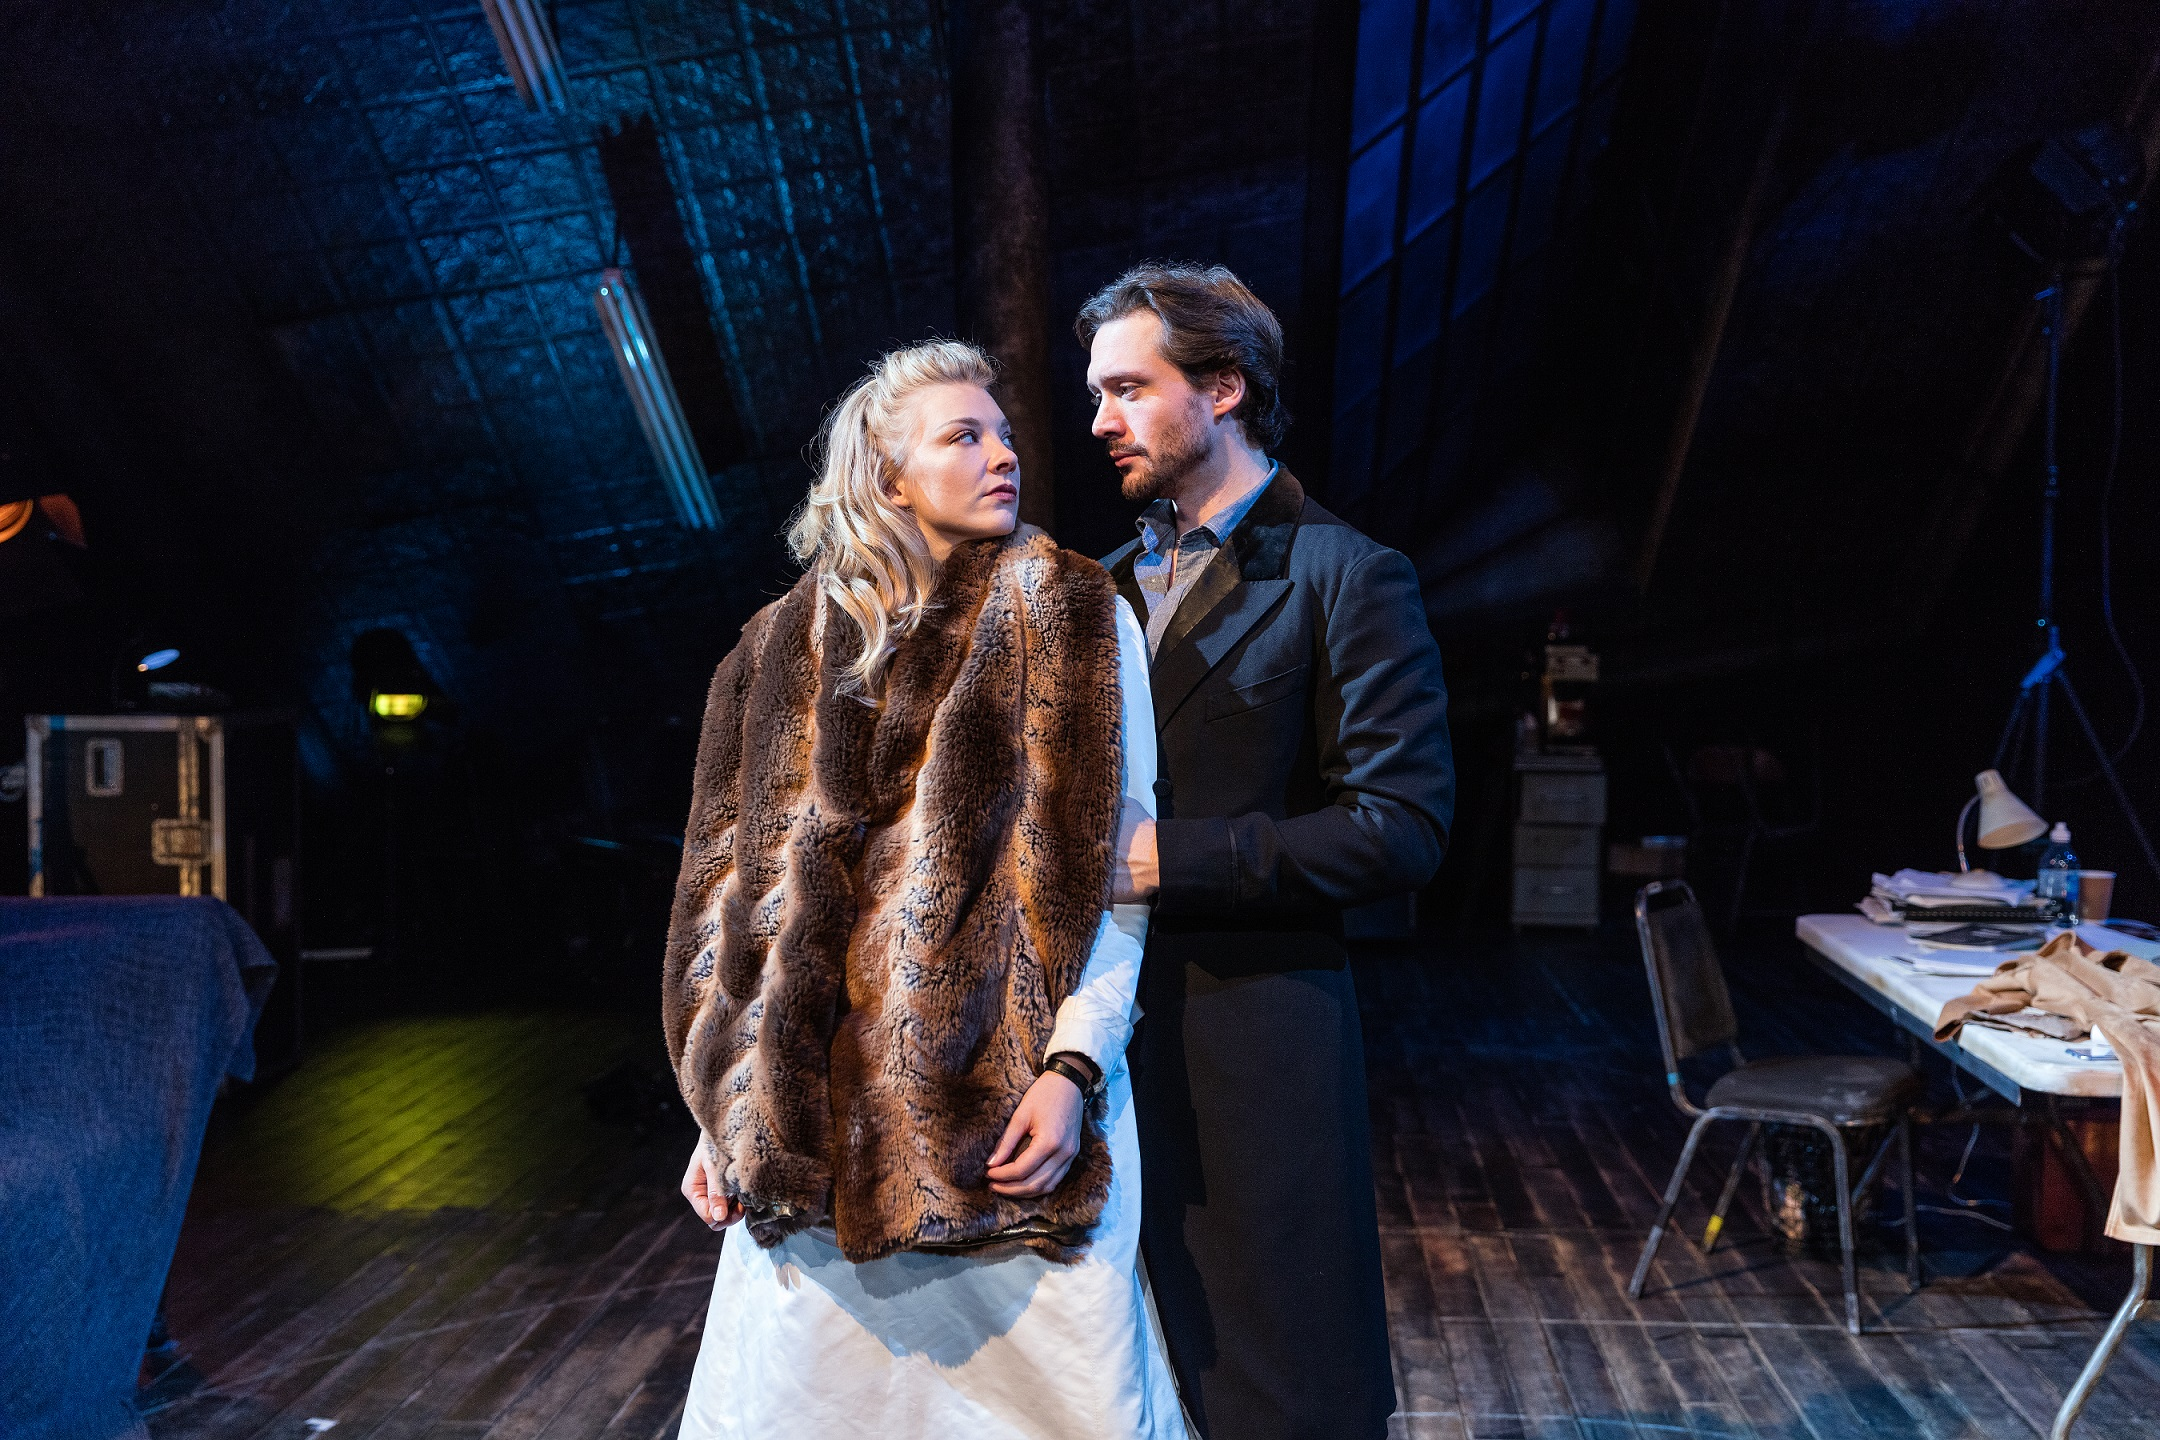 Natalie-Dormer-and-David-Oakes-in-Venus-in-Fur-at-Theatre-Royal-Haymarket.-Credit-Darren-Bell-3